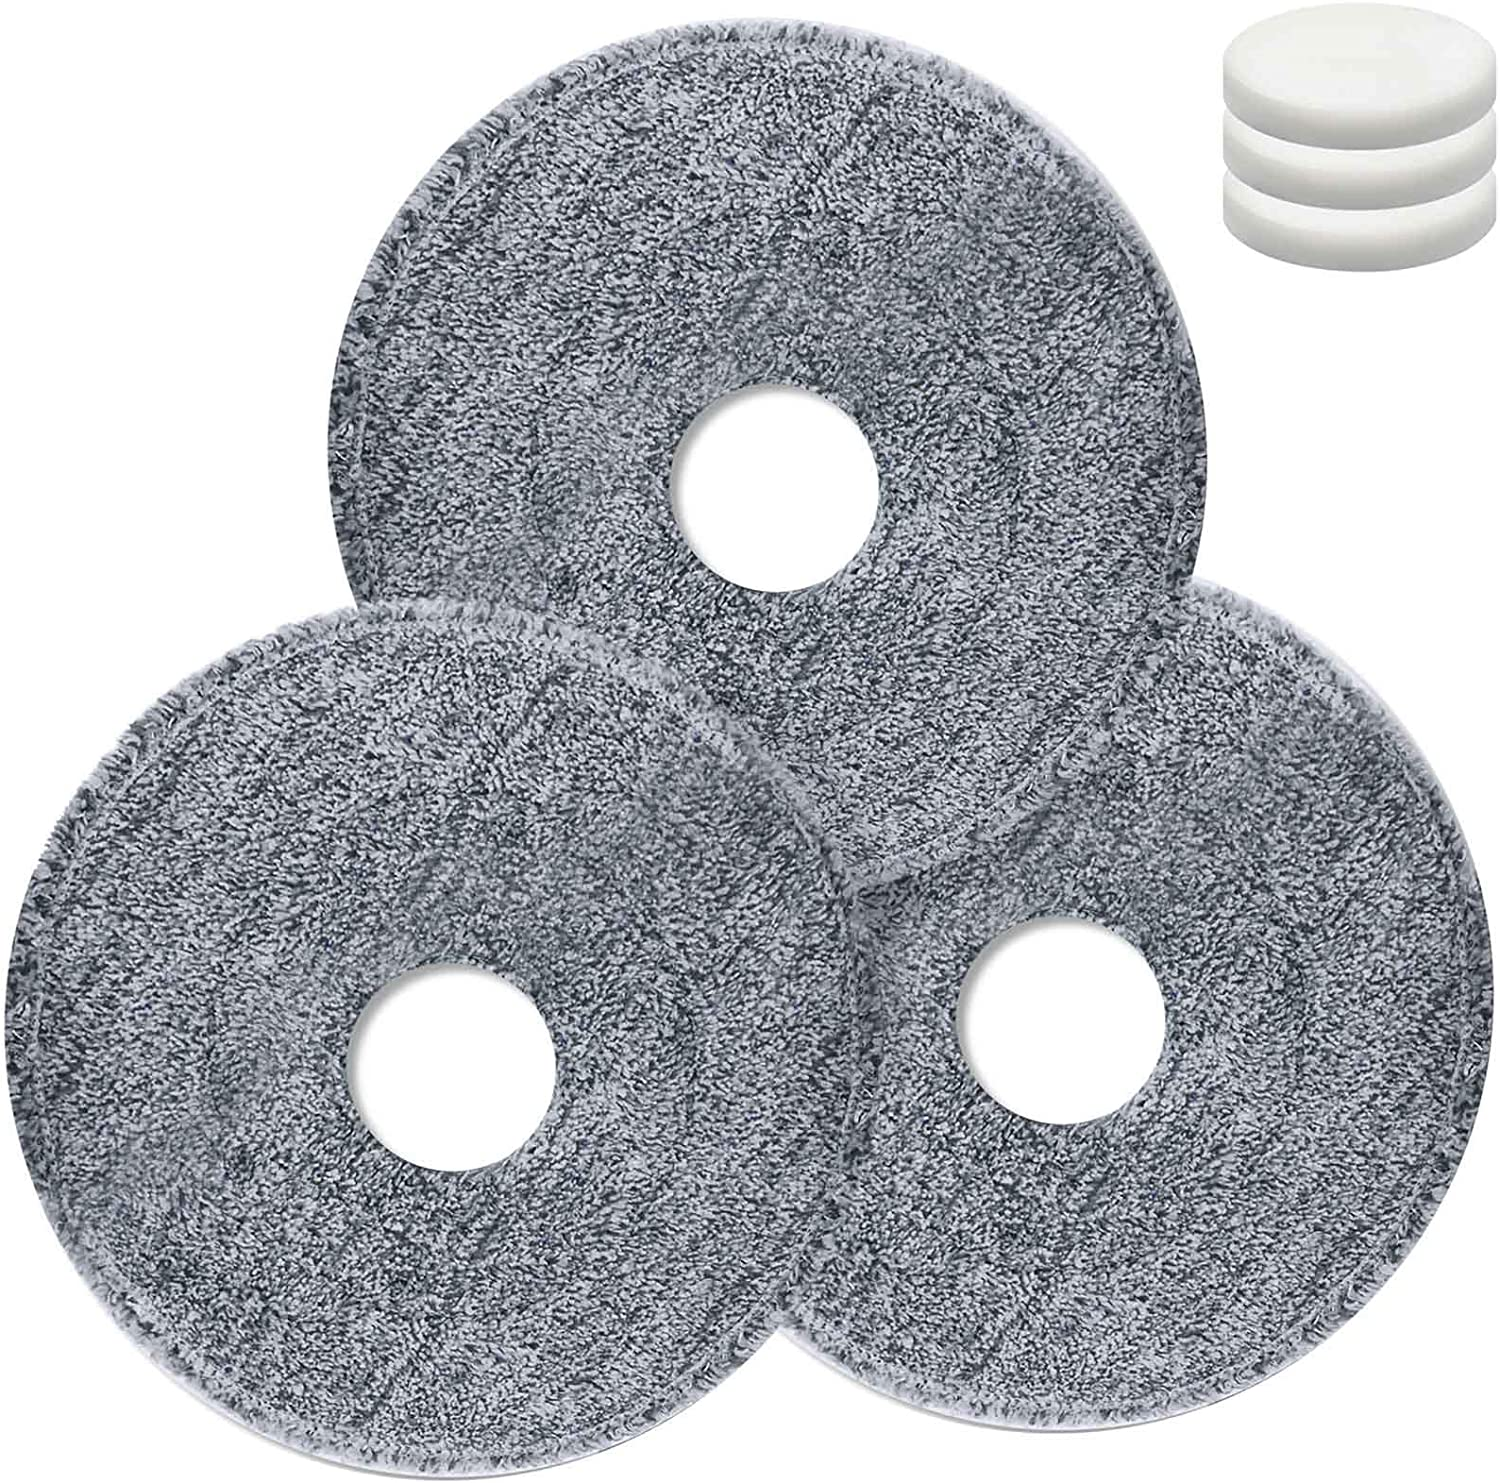 VENETIO iMOP Spin Mop Refills Washable free Include - 10